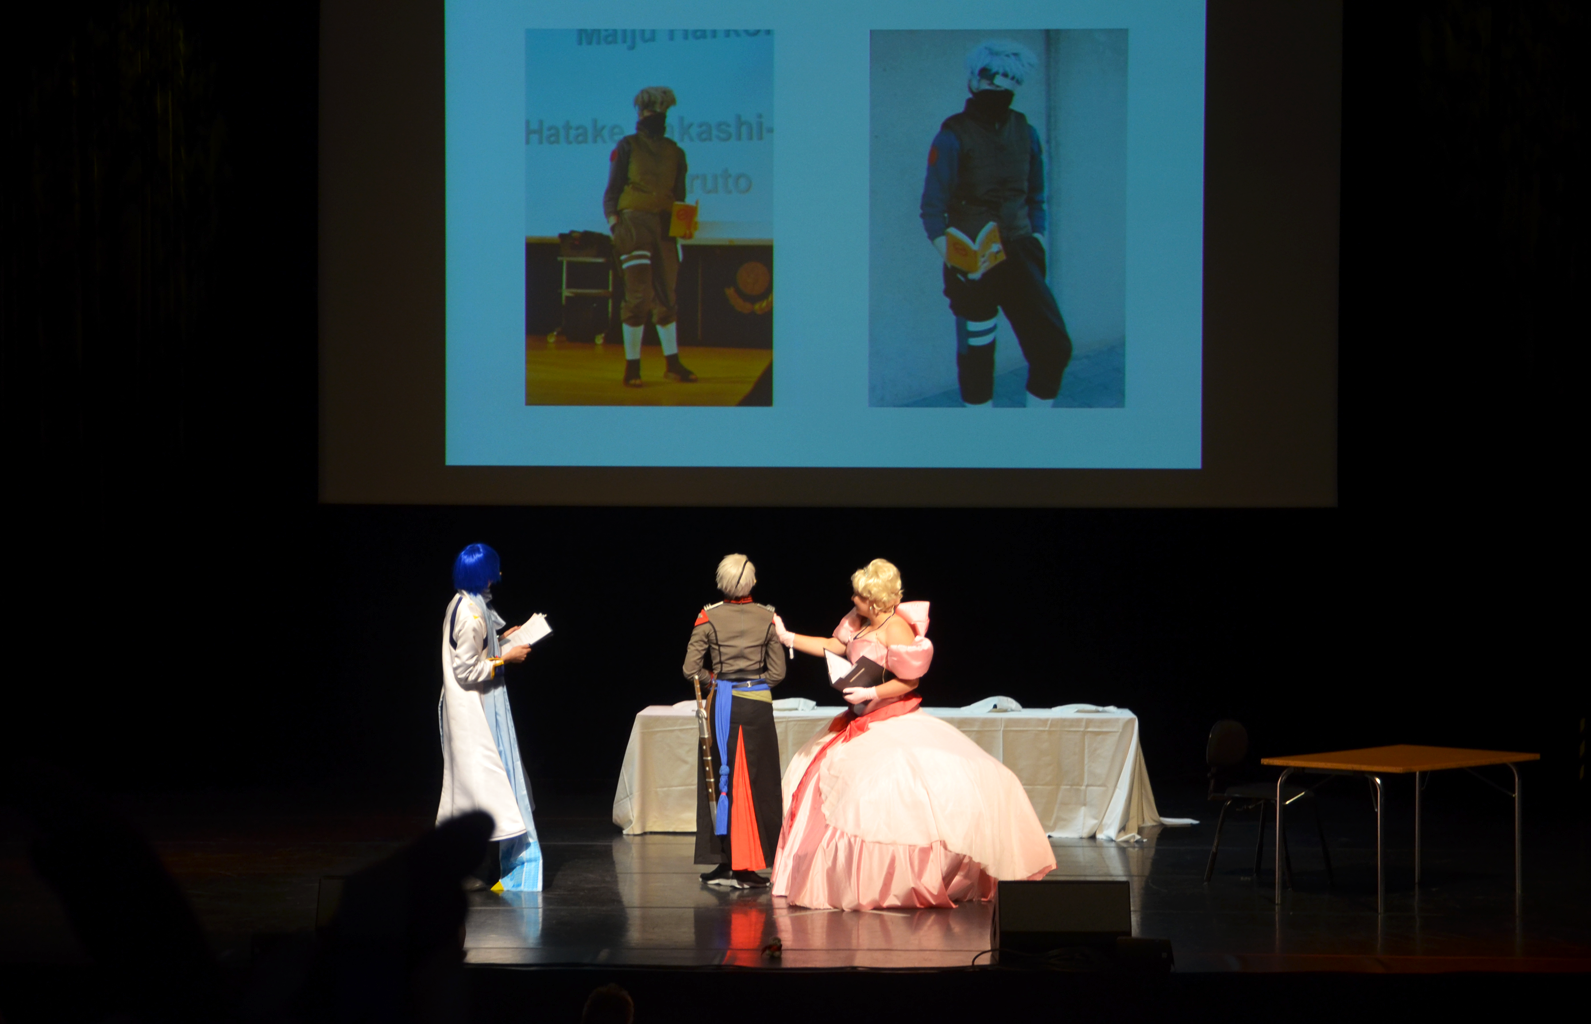 animecon 2014 kääpägaala